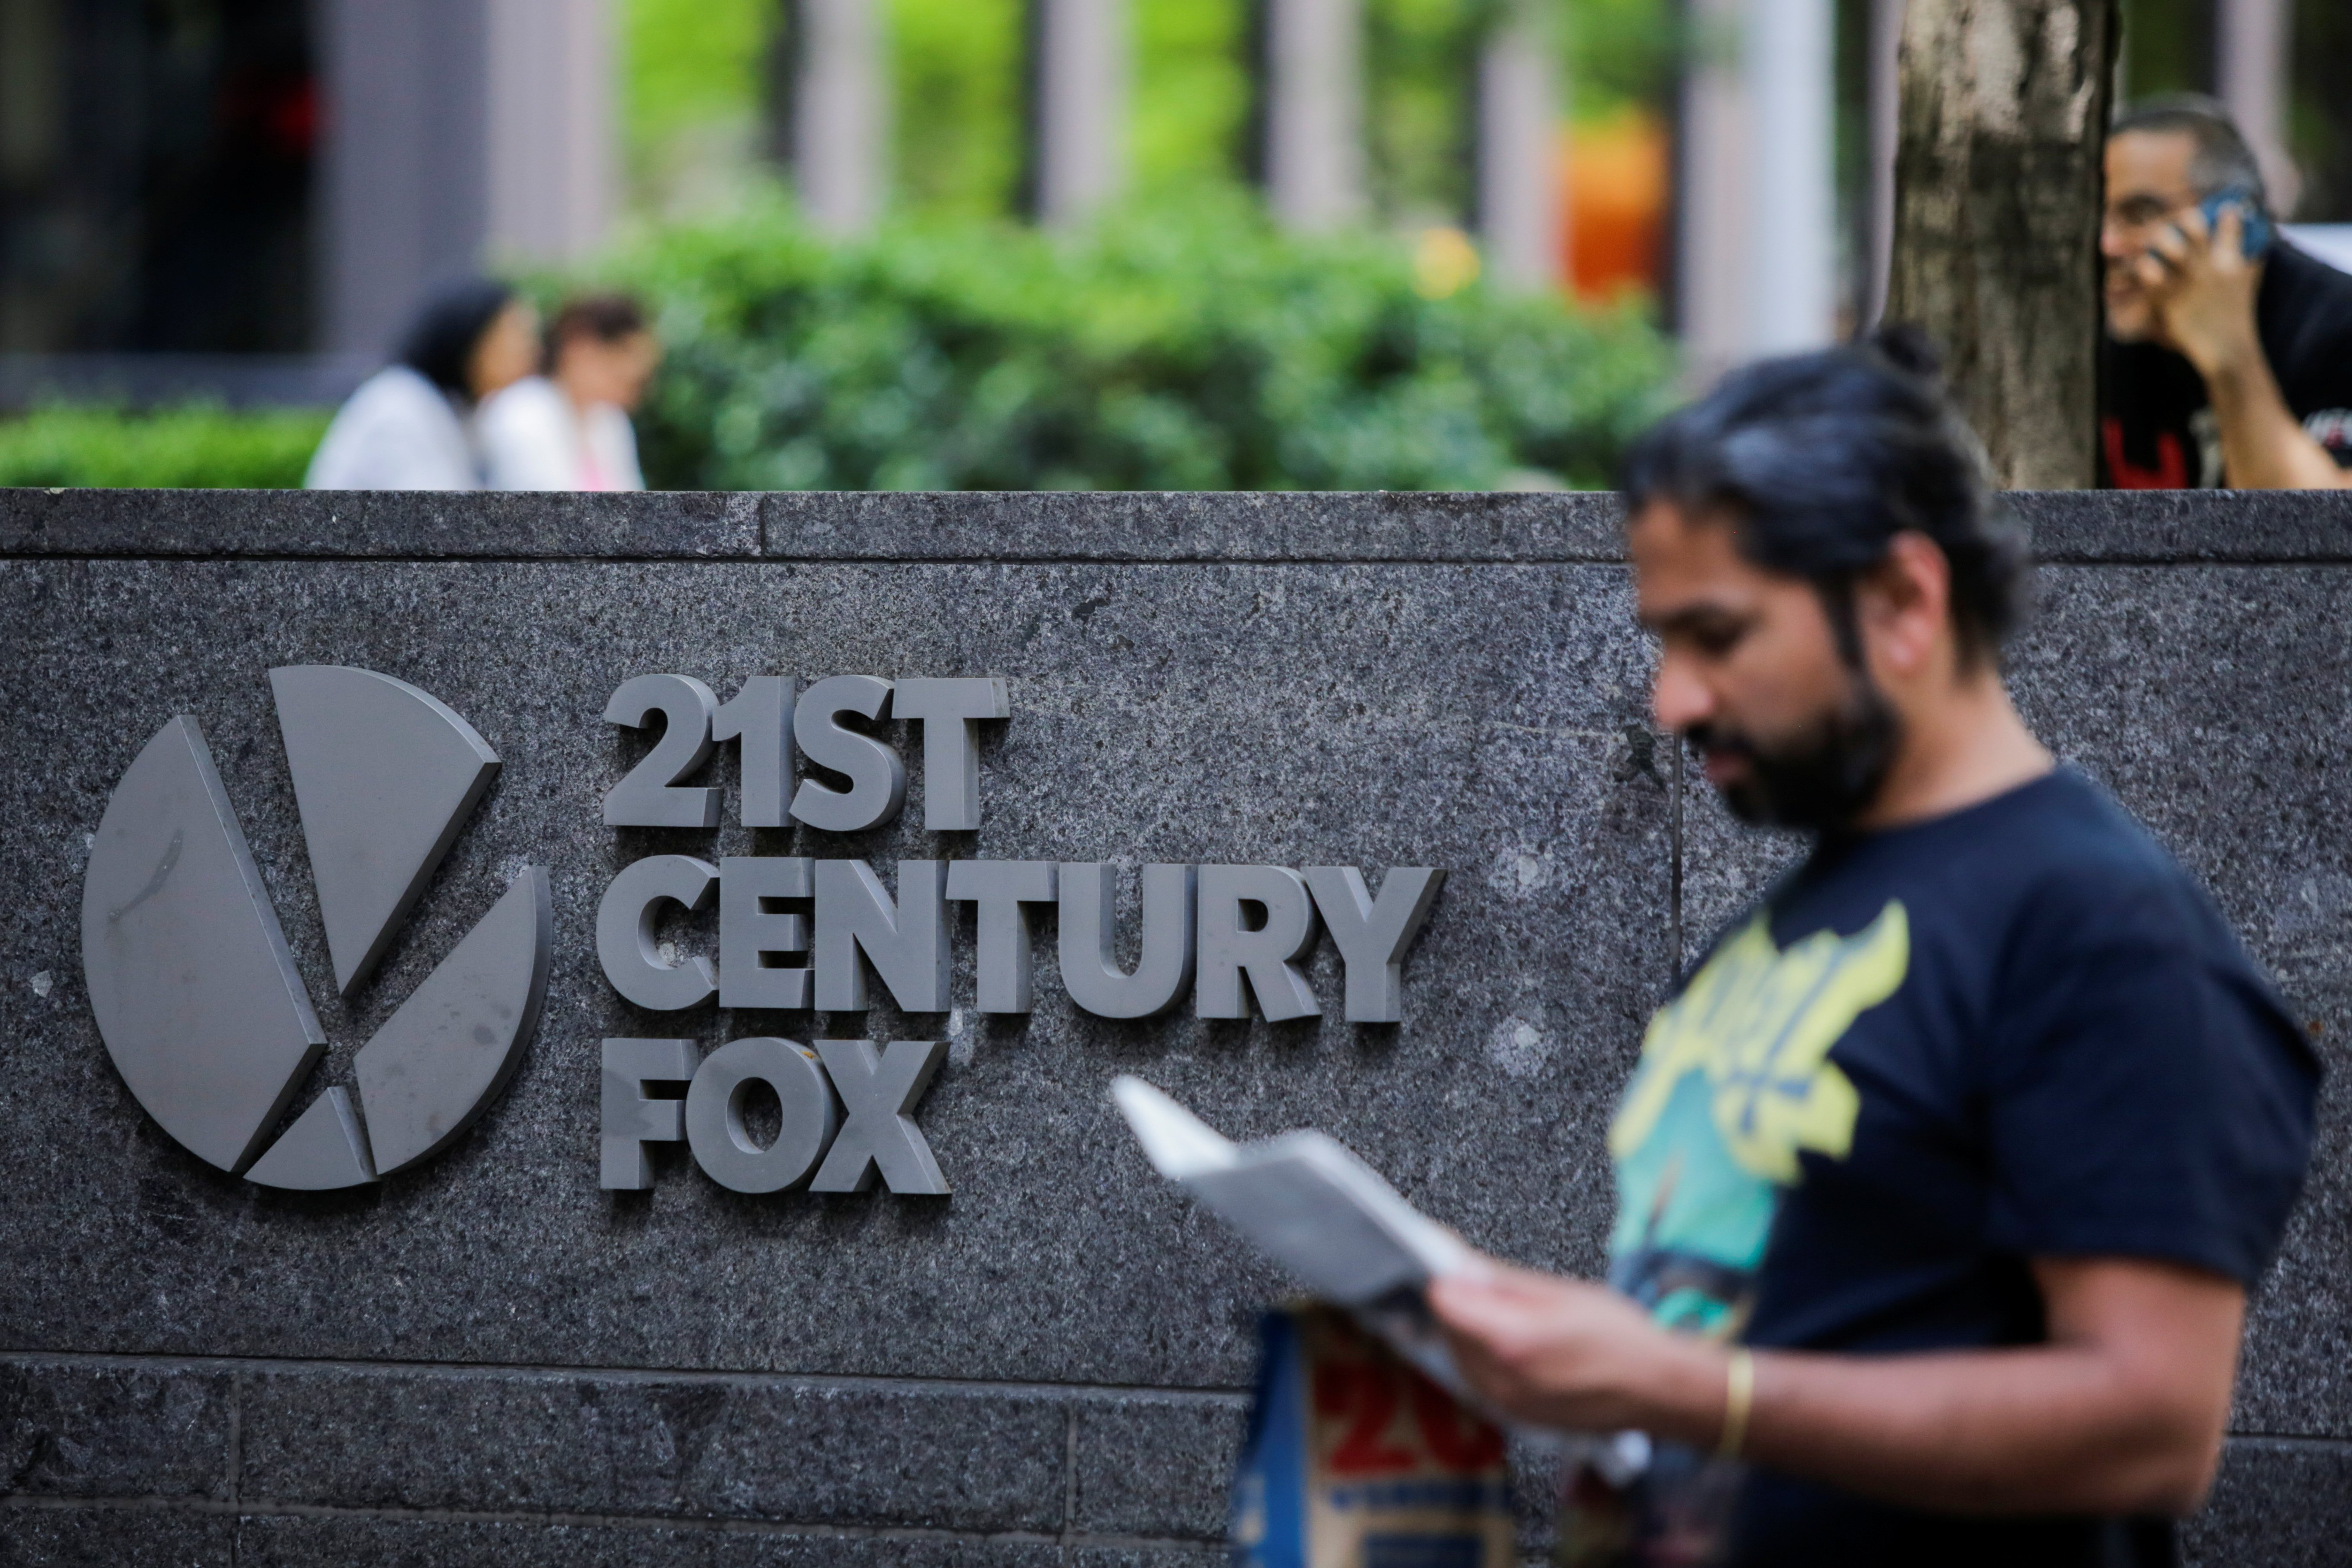 The 21st Century Fox logo is displayed outside the News Corporation building in the Manhattan borough of New York City, New York, U.S., June 15, 2018. REUTERS/Eduardo Munoz - RC186FA54DF0